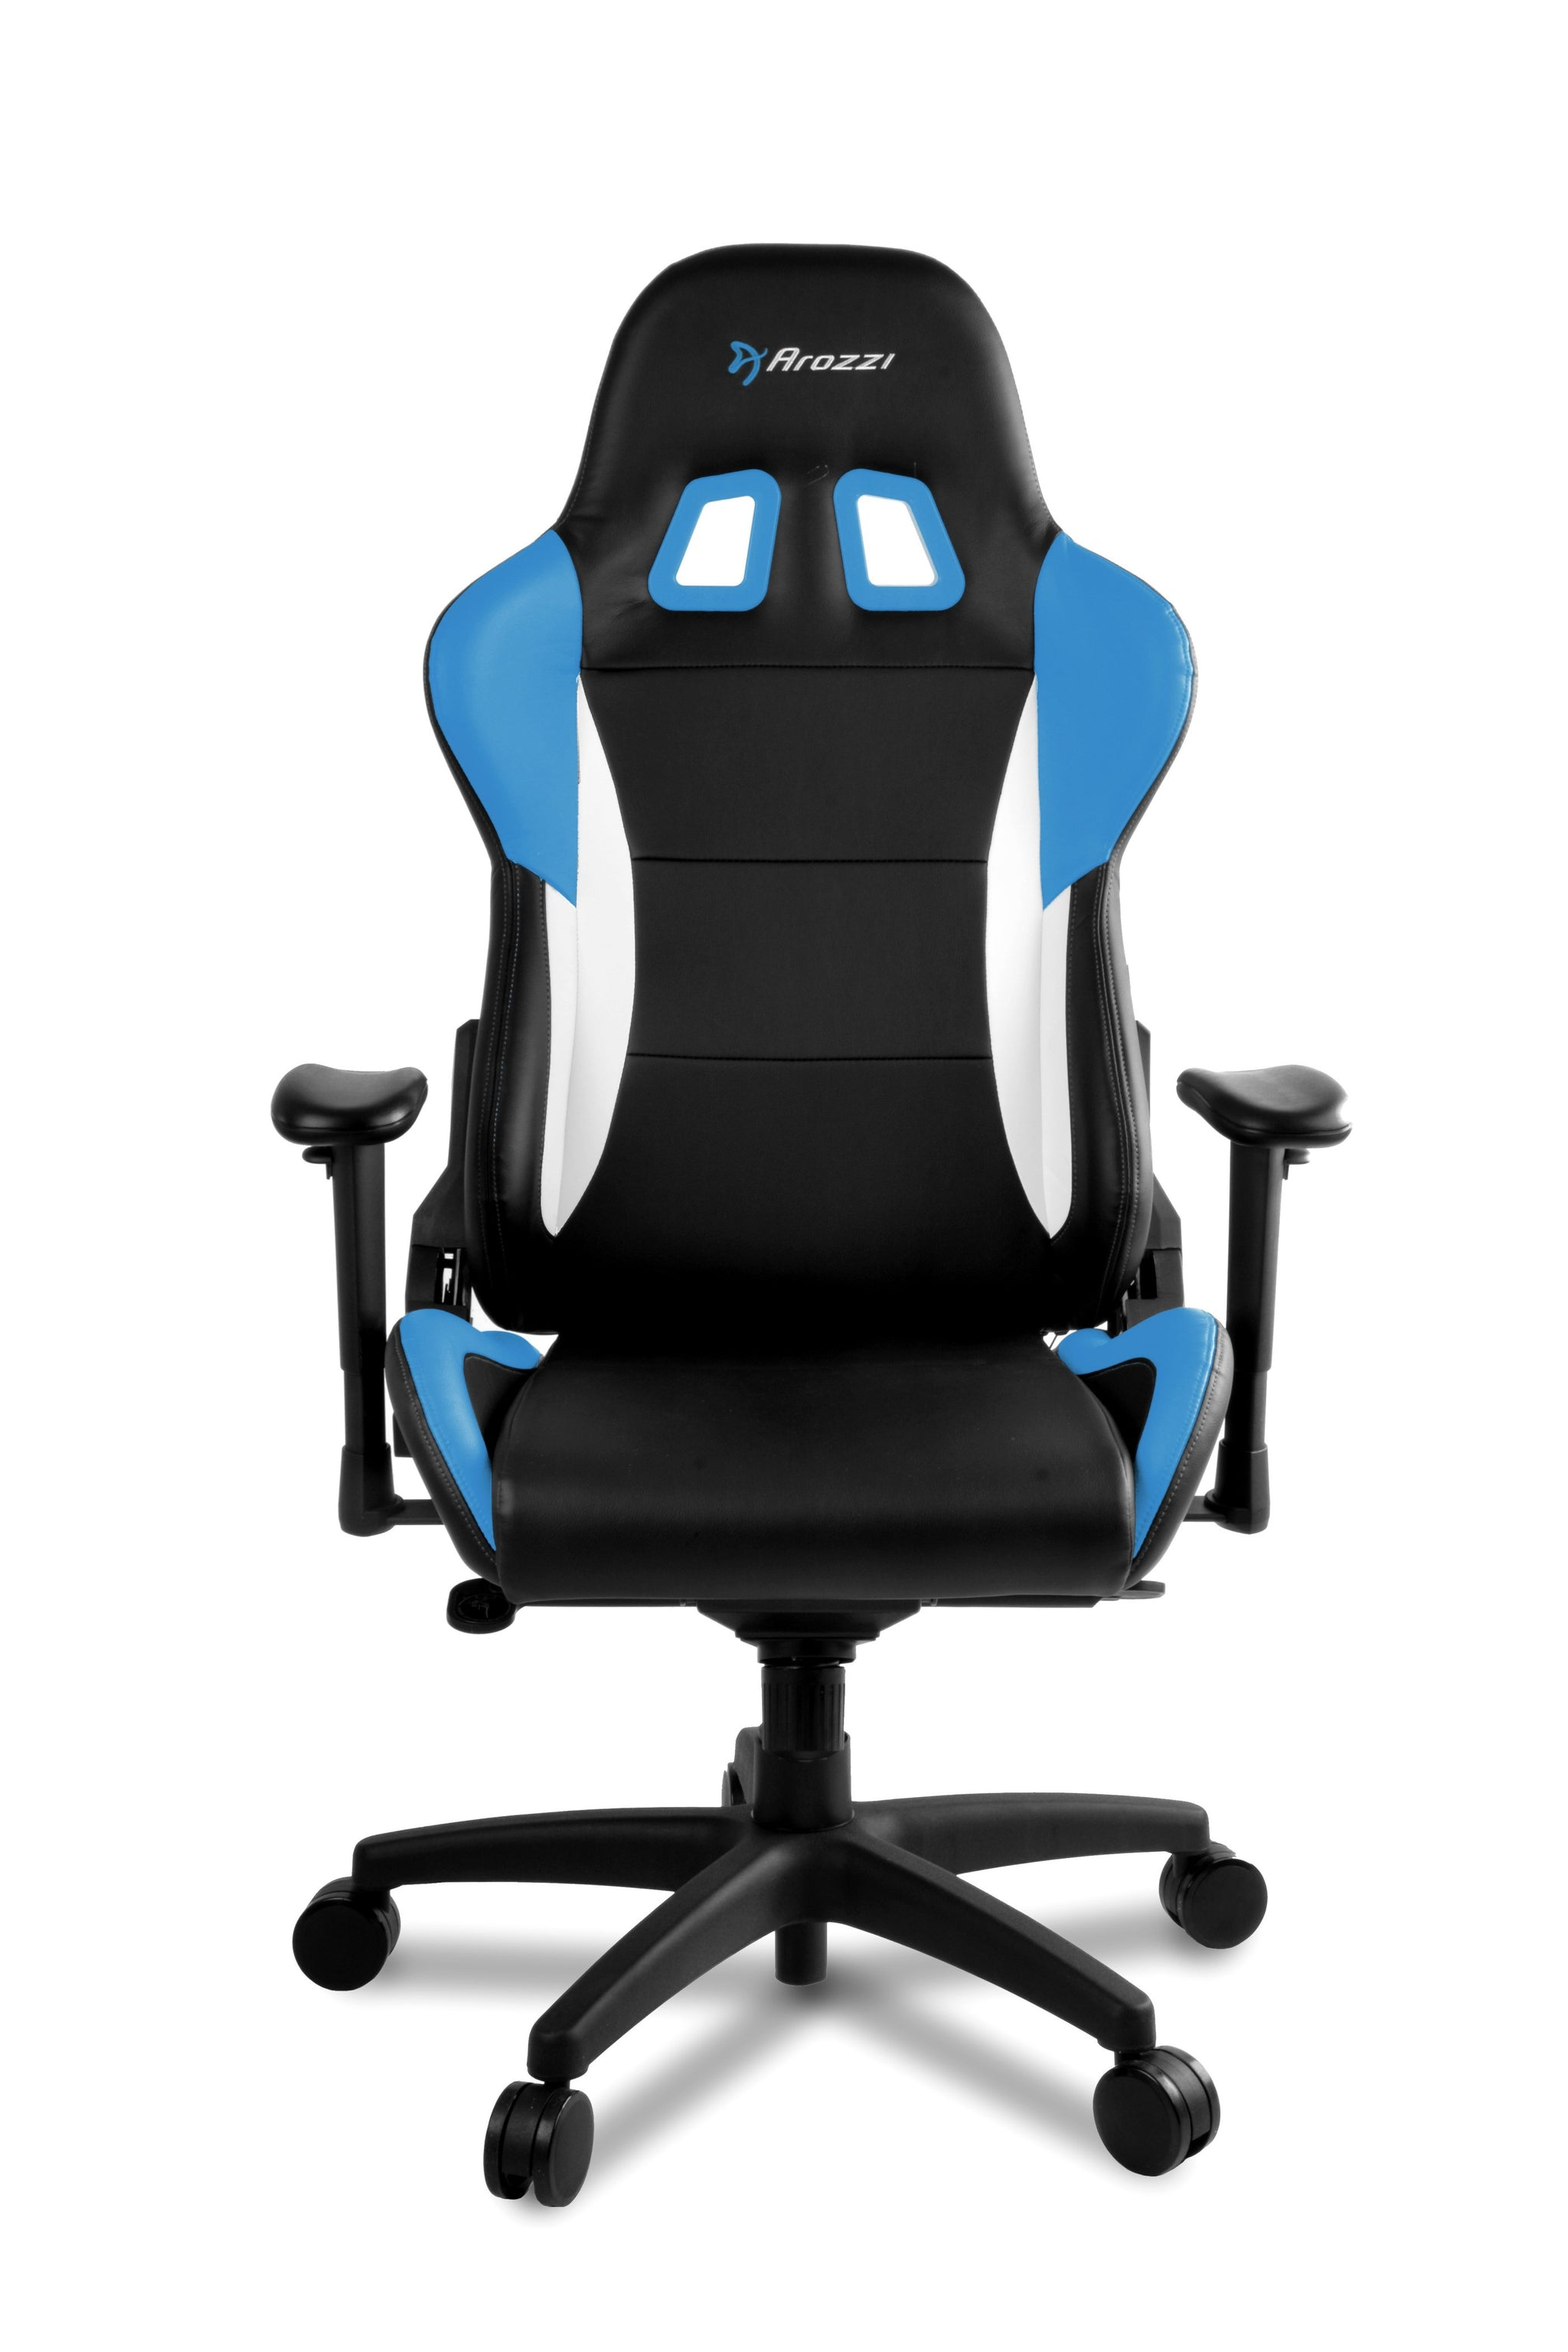 Verona Pro V2 Gaming Chair Racer Gaming Chairs